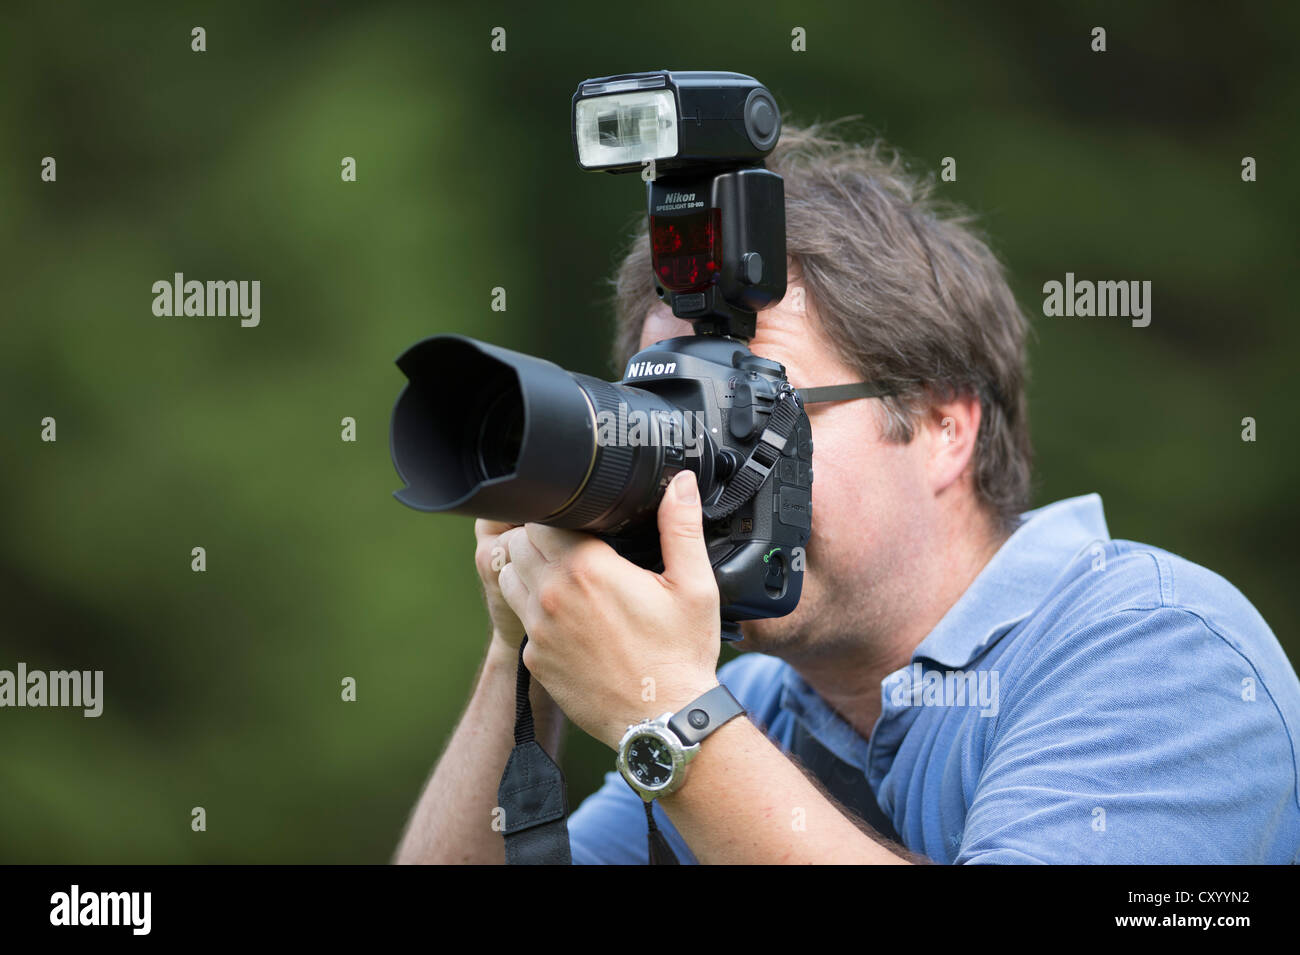 Photographer, mid 40's, taking pictures, looking through the viewfinder of a Nikon D4 digital SLR camera with - Stock Image